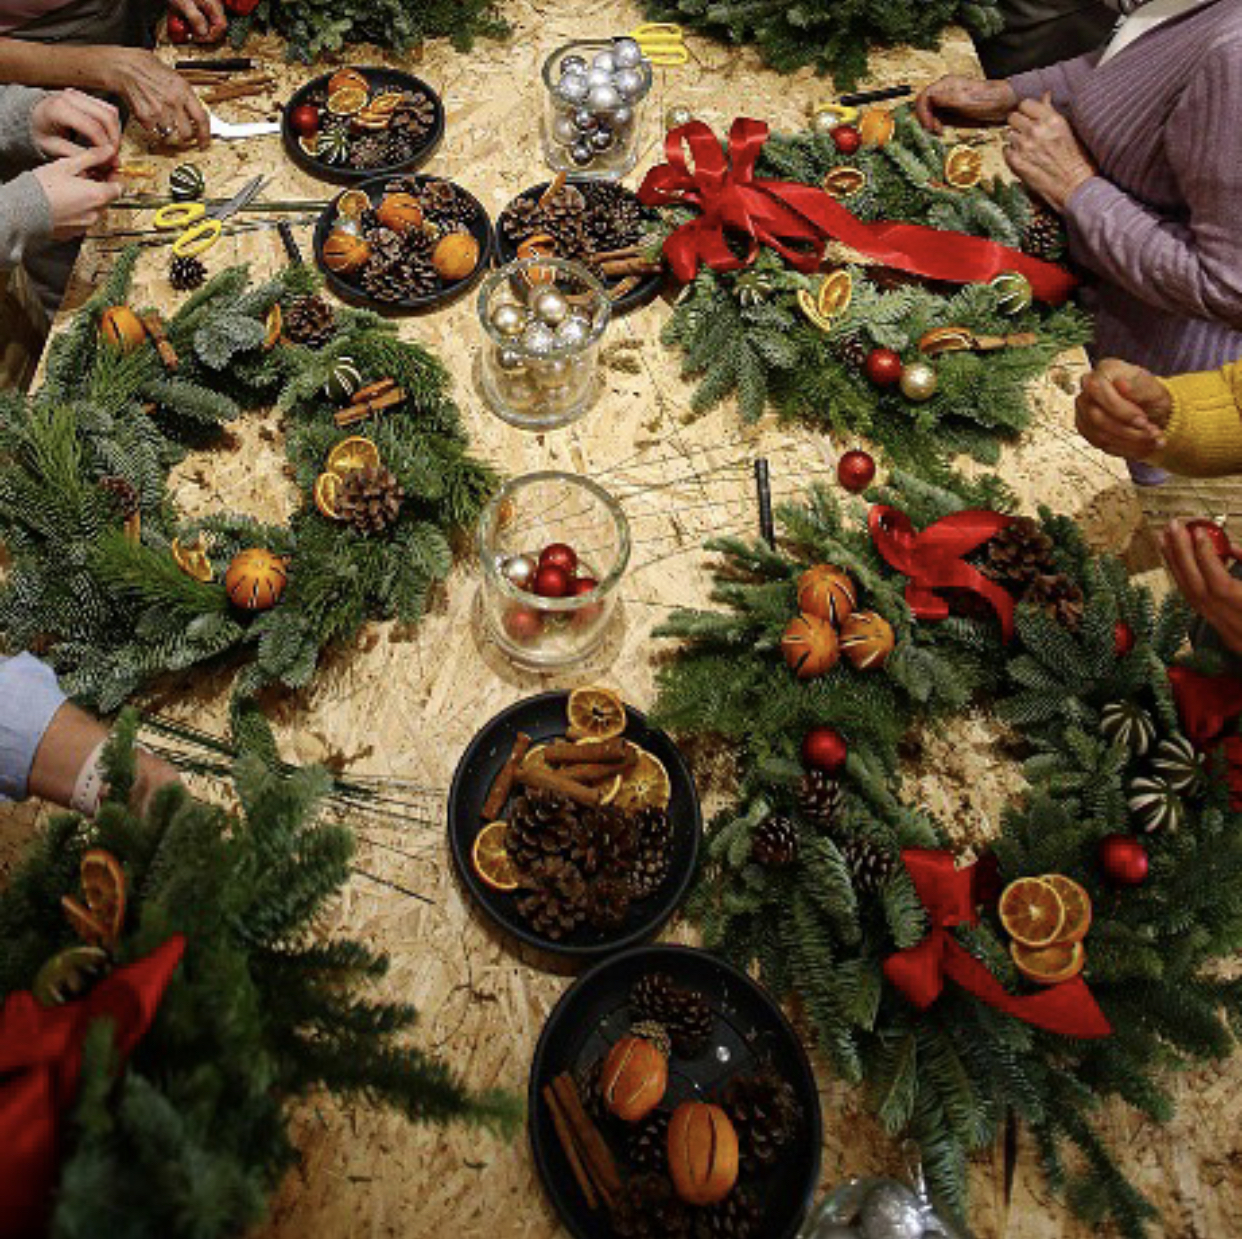 An image of the type of wreath making workshop Florismart UK will be putting on at our Christmas blogger event near Bristol in November.